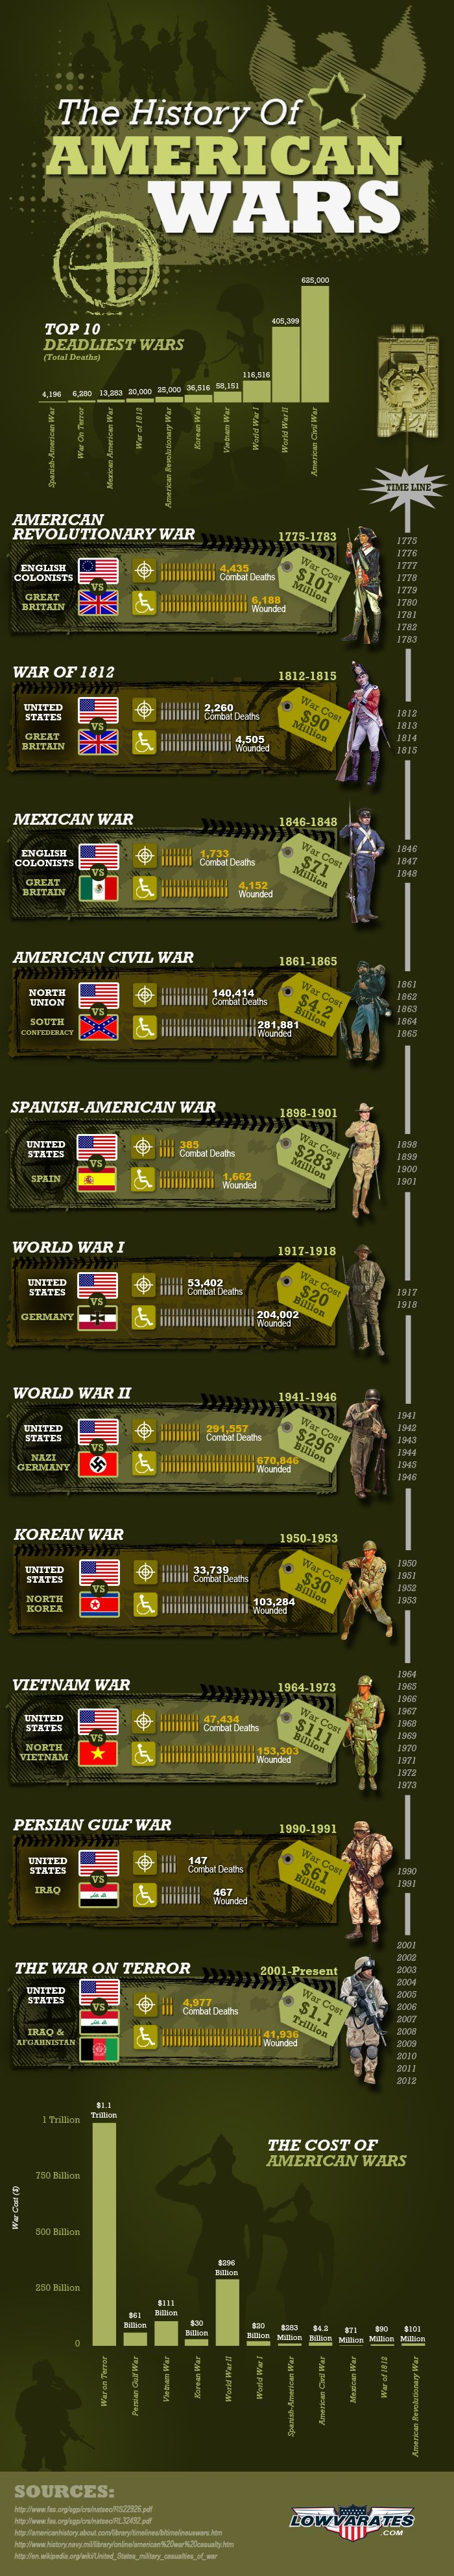 The History of American Wars - Veterans Day #Veterans